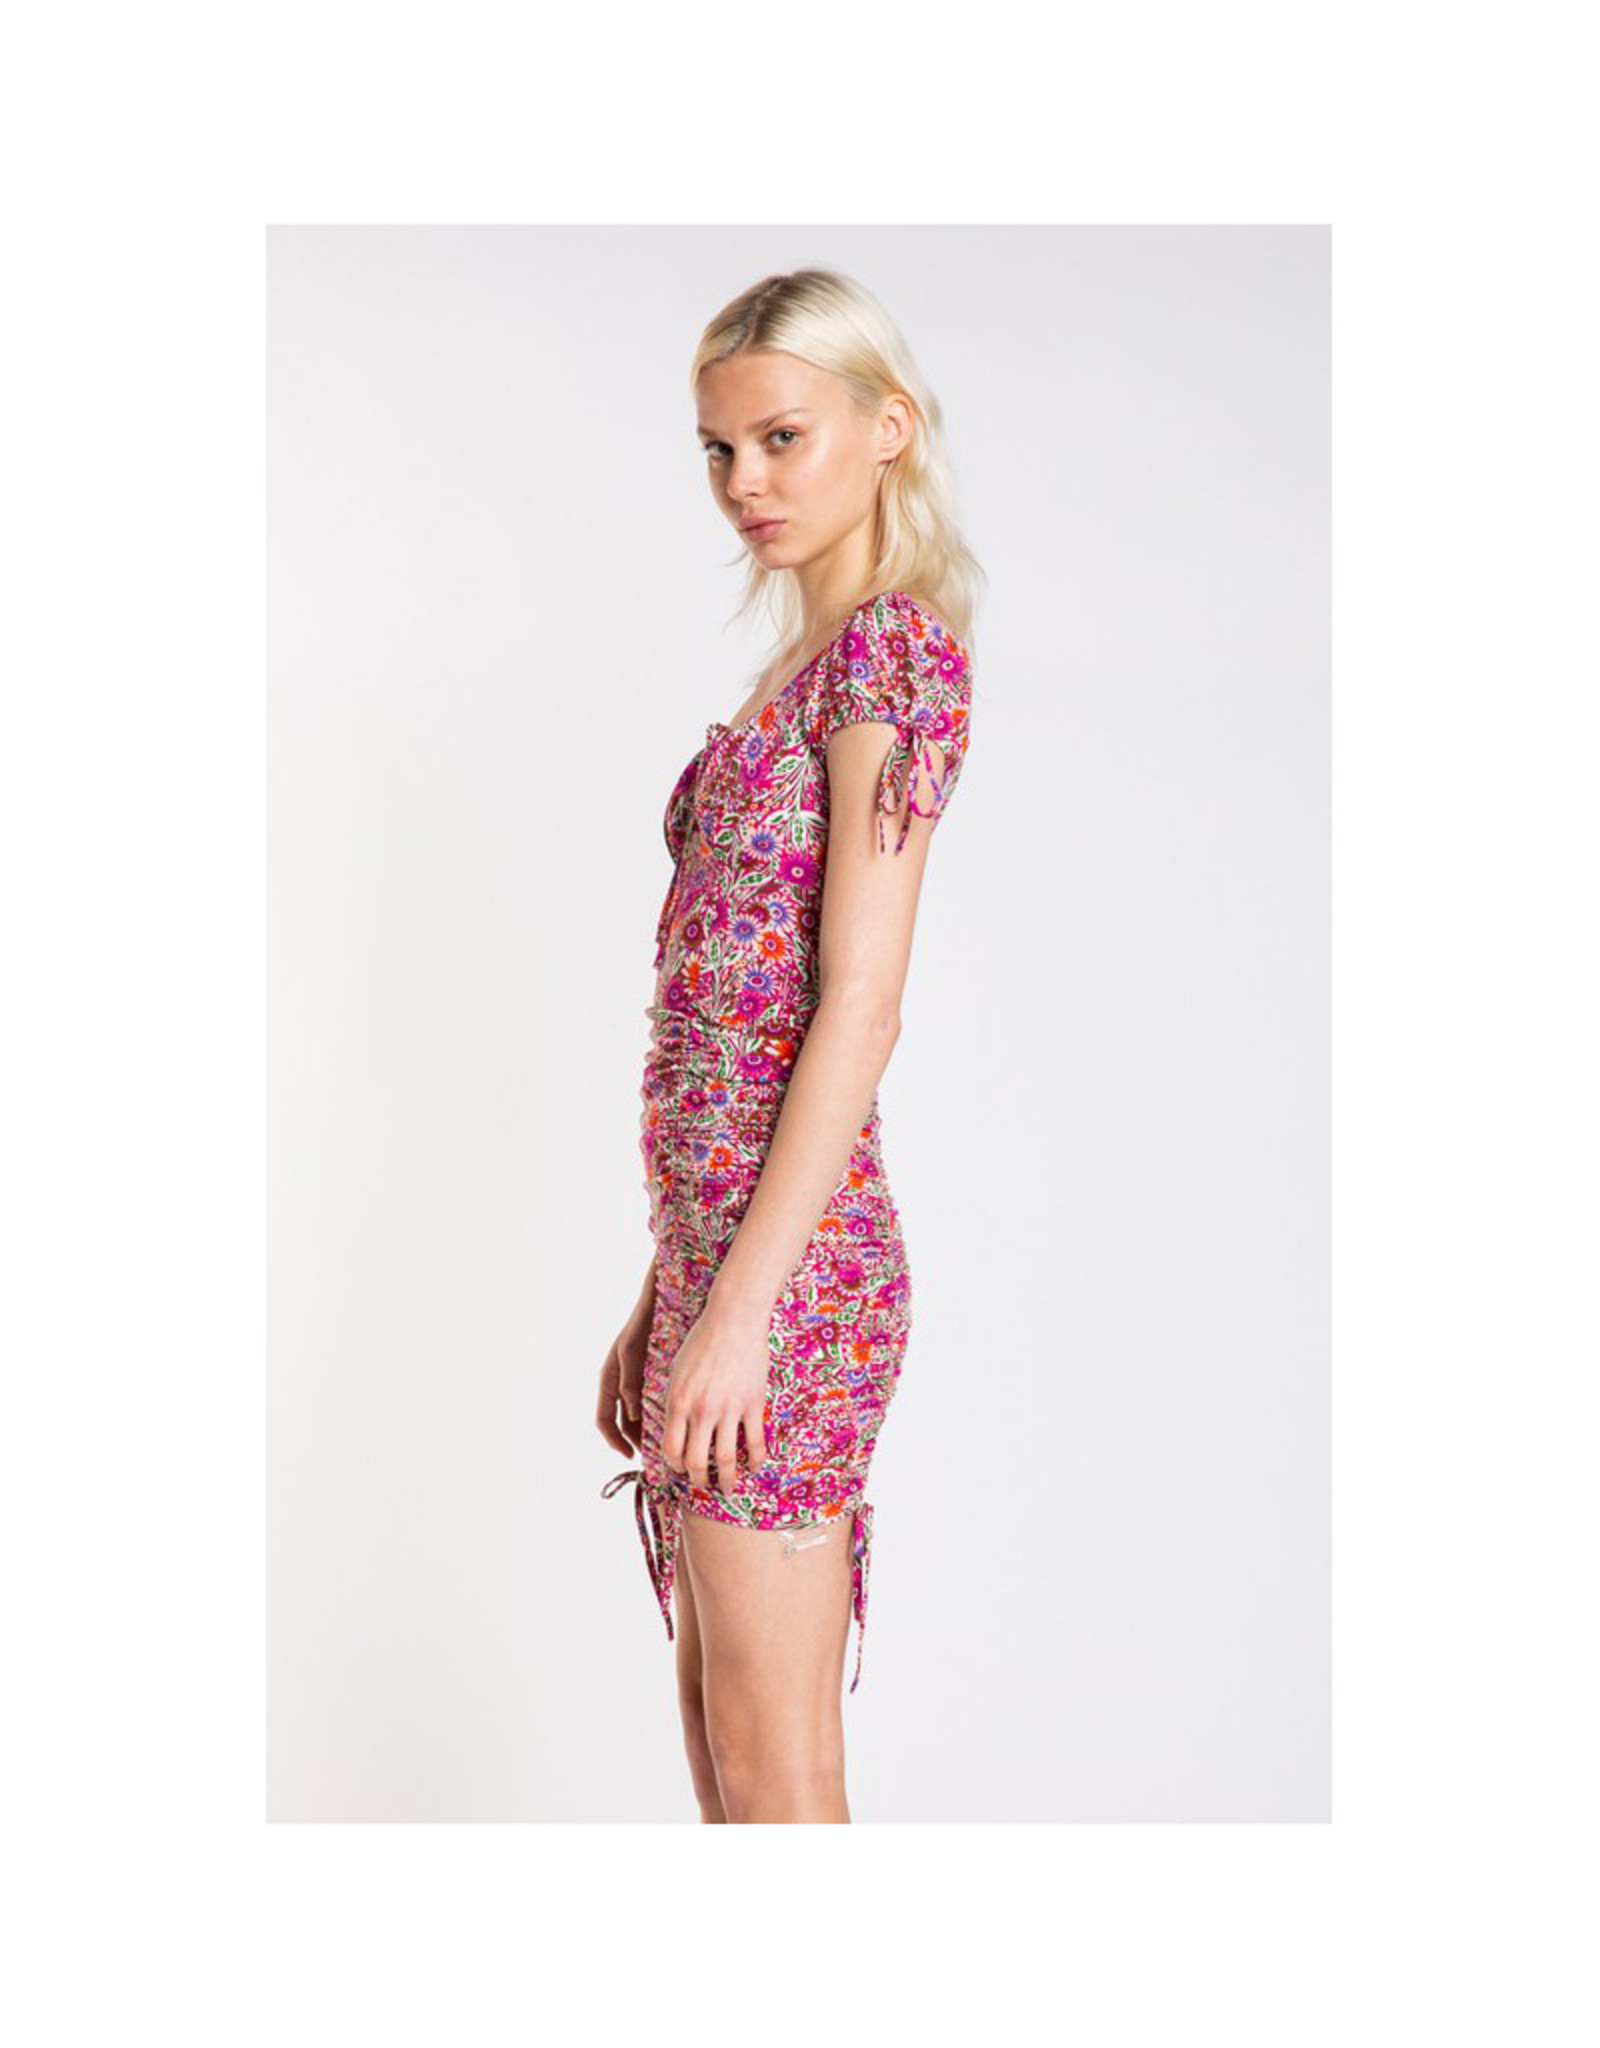 Skylar Madison Pink Peacock Mini Dress